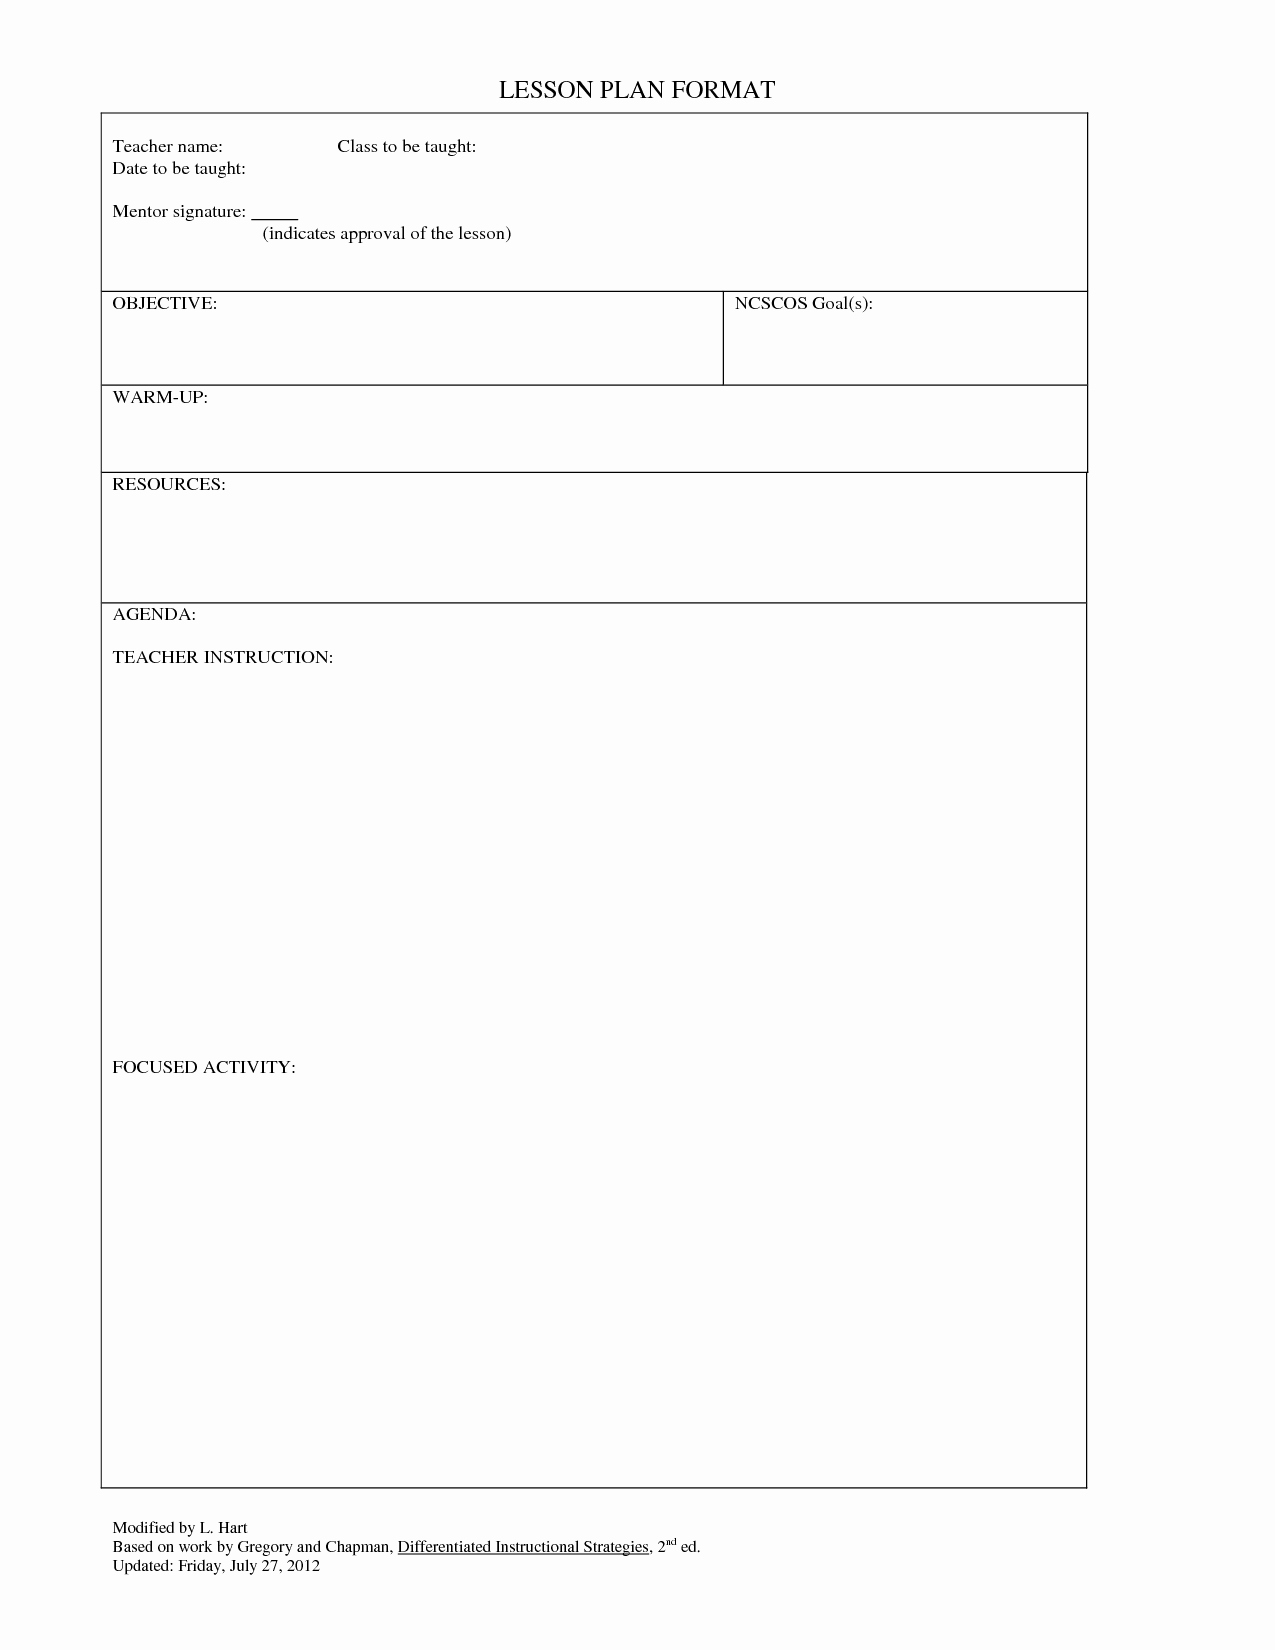 Lesson Plans Blank Template Elegant Blank Lesson Plans for Teachers